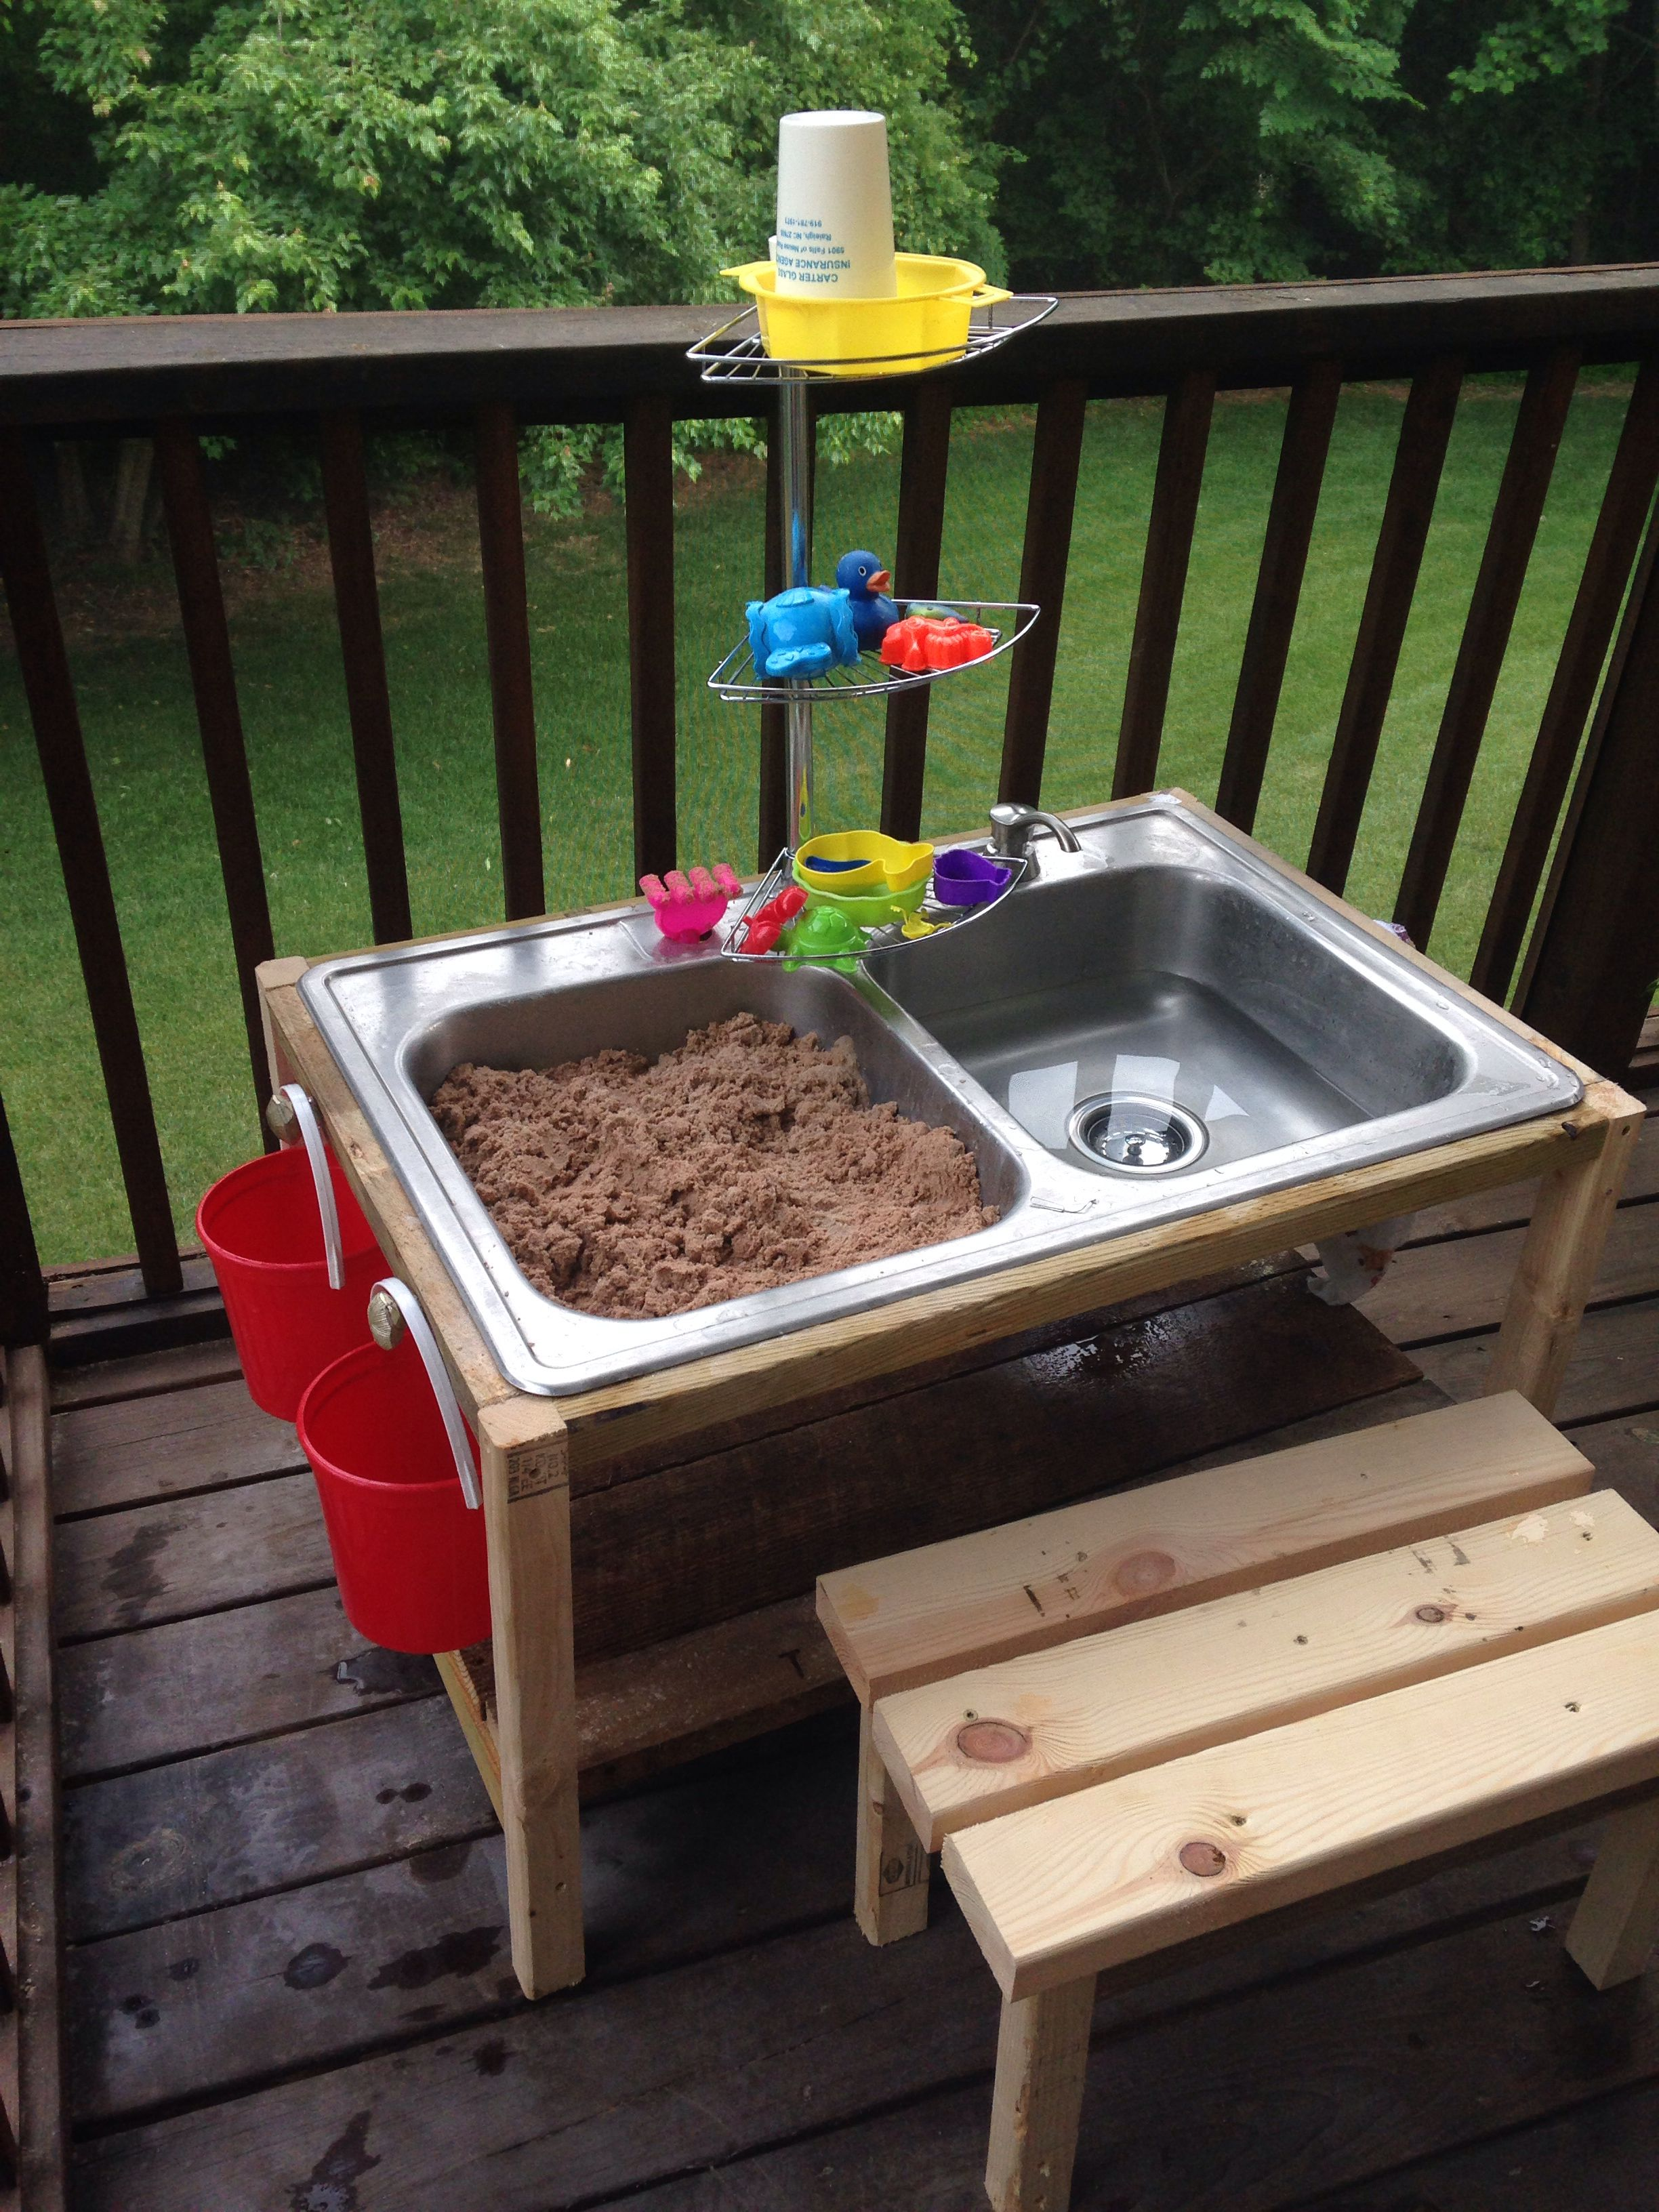 Diy Sand And Water Table Made From A Thrift Store Kitchen Sink Palette Wood And Leftover Wood From Other Projects Gardening For Kids Kids Kitchen Outdoor Kids